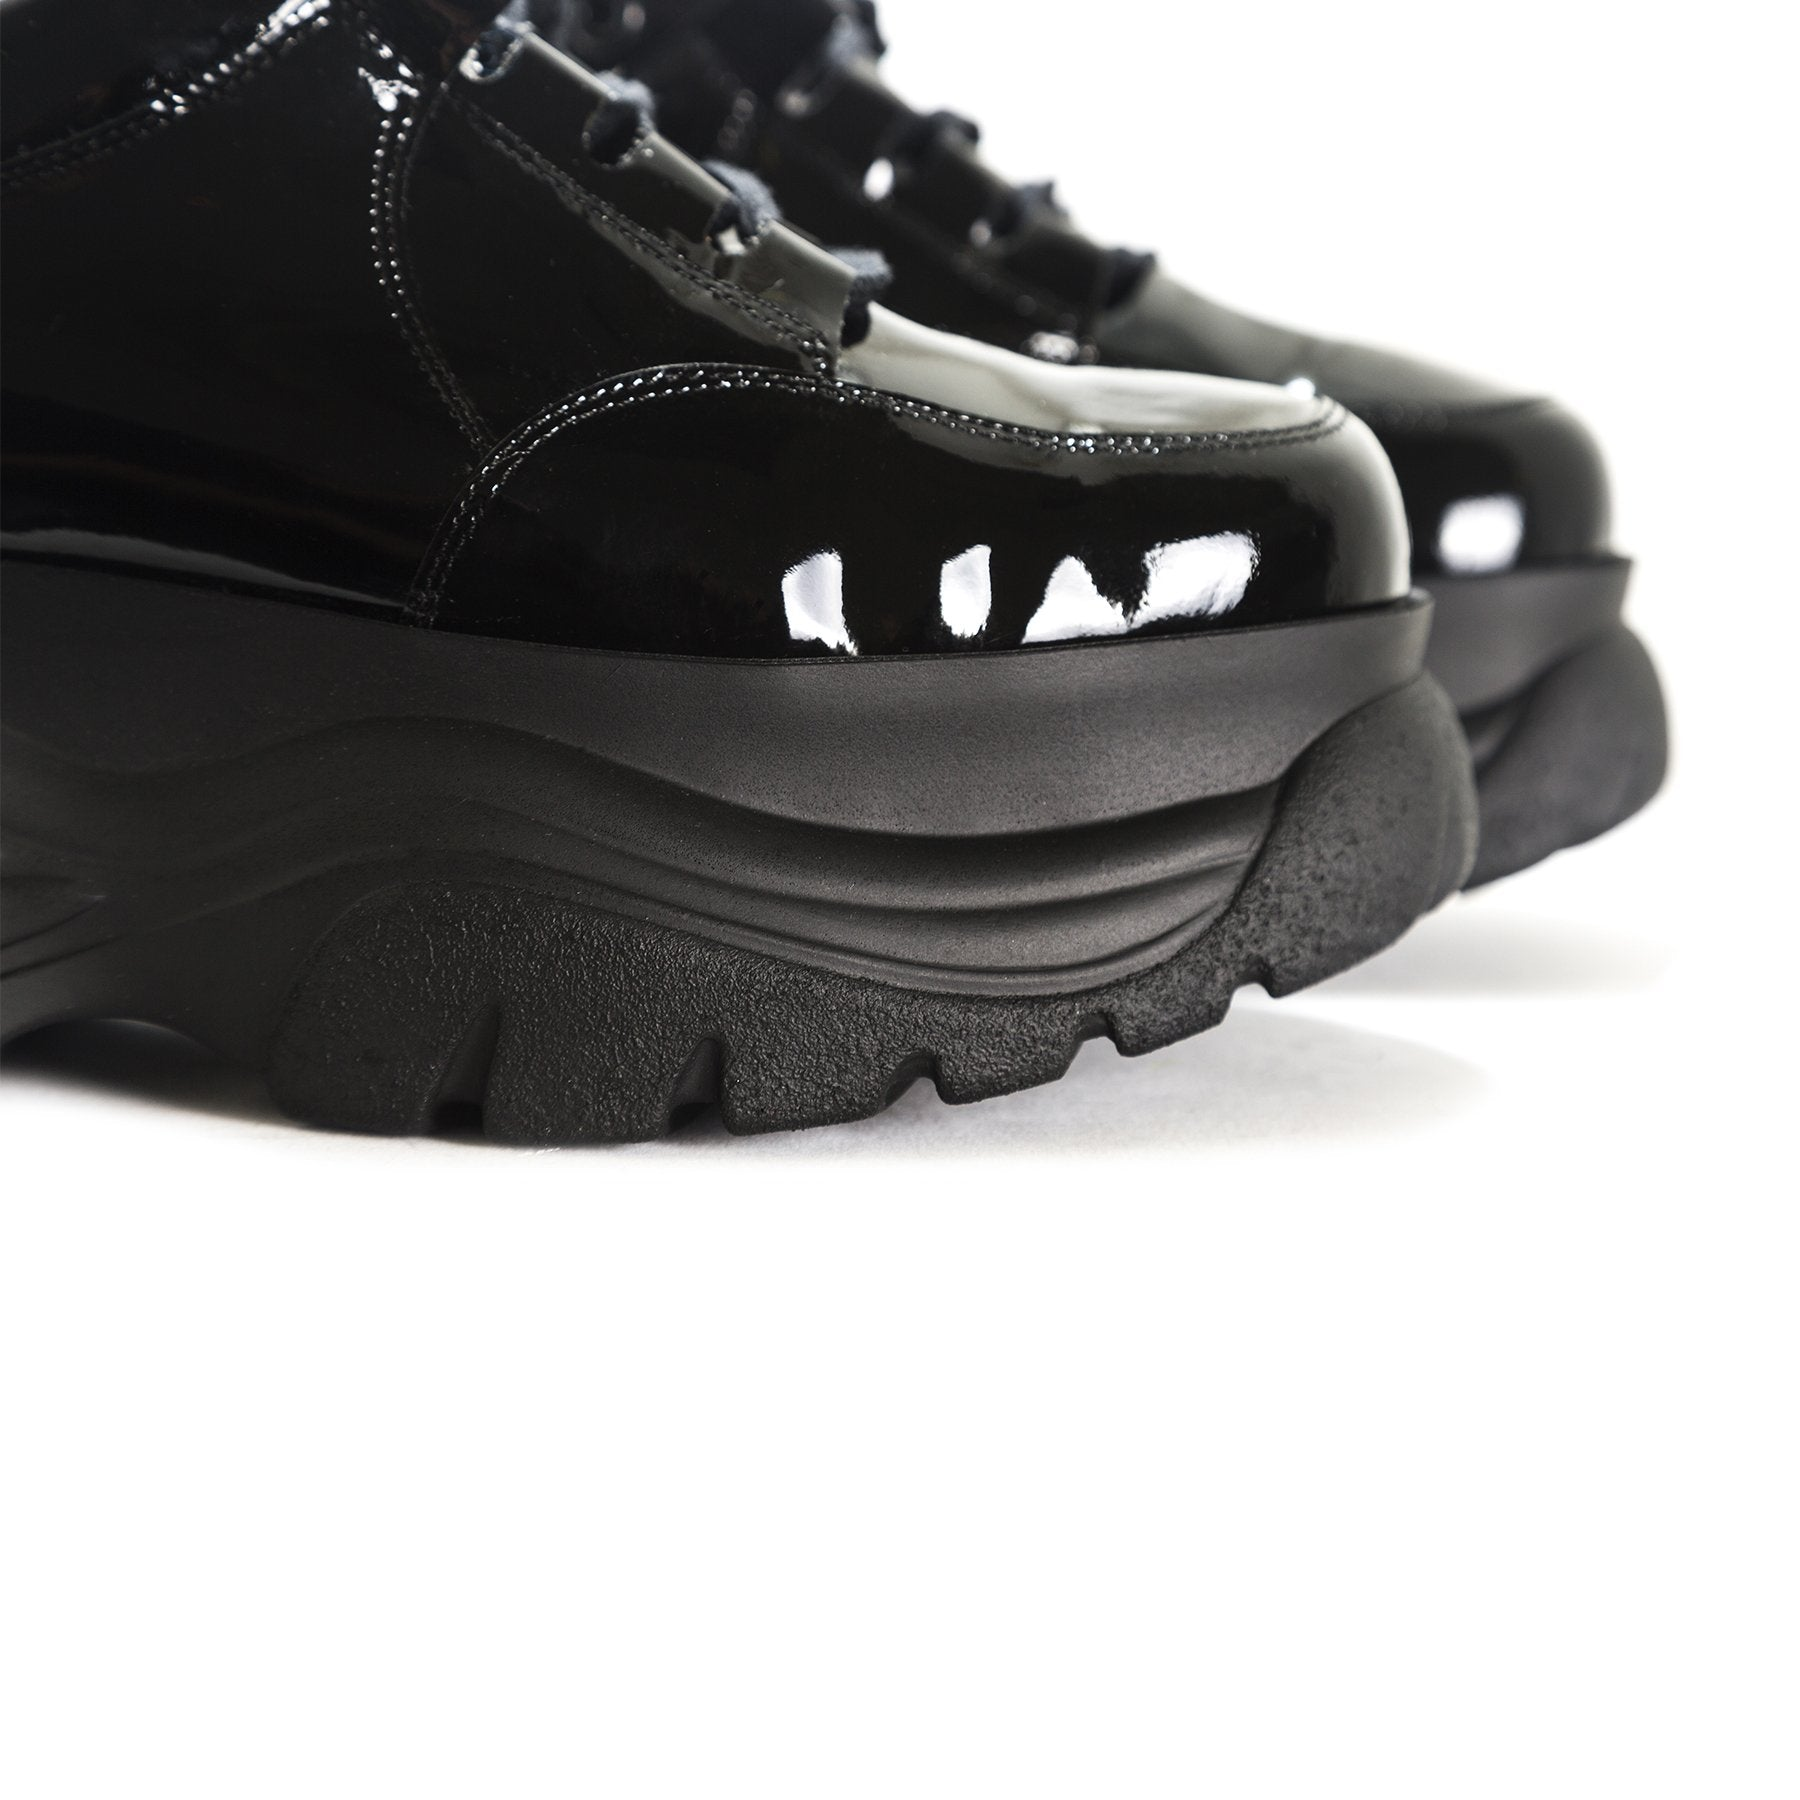 Moster Black Patent Sneakers